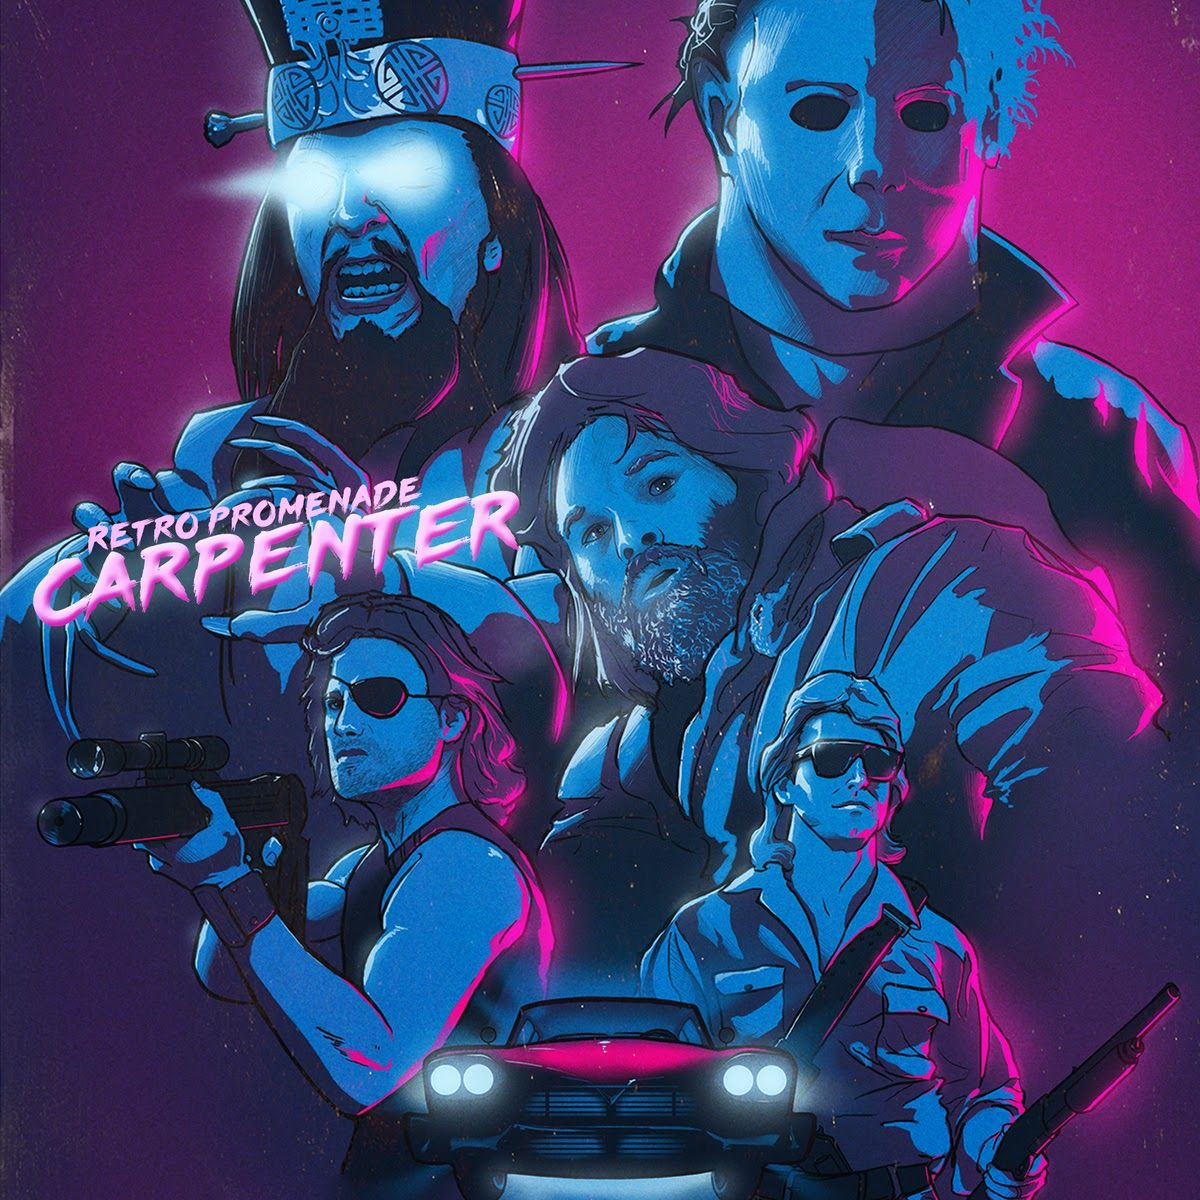 John Carpenter Films Inspire Retro Promenade Album Art